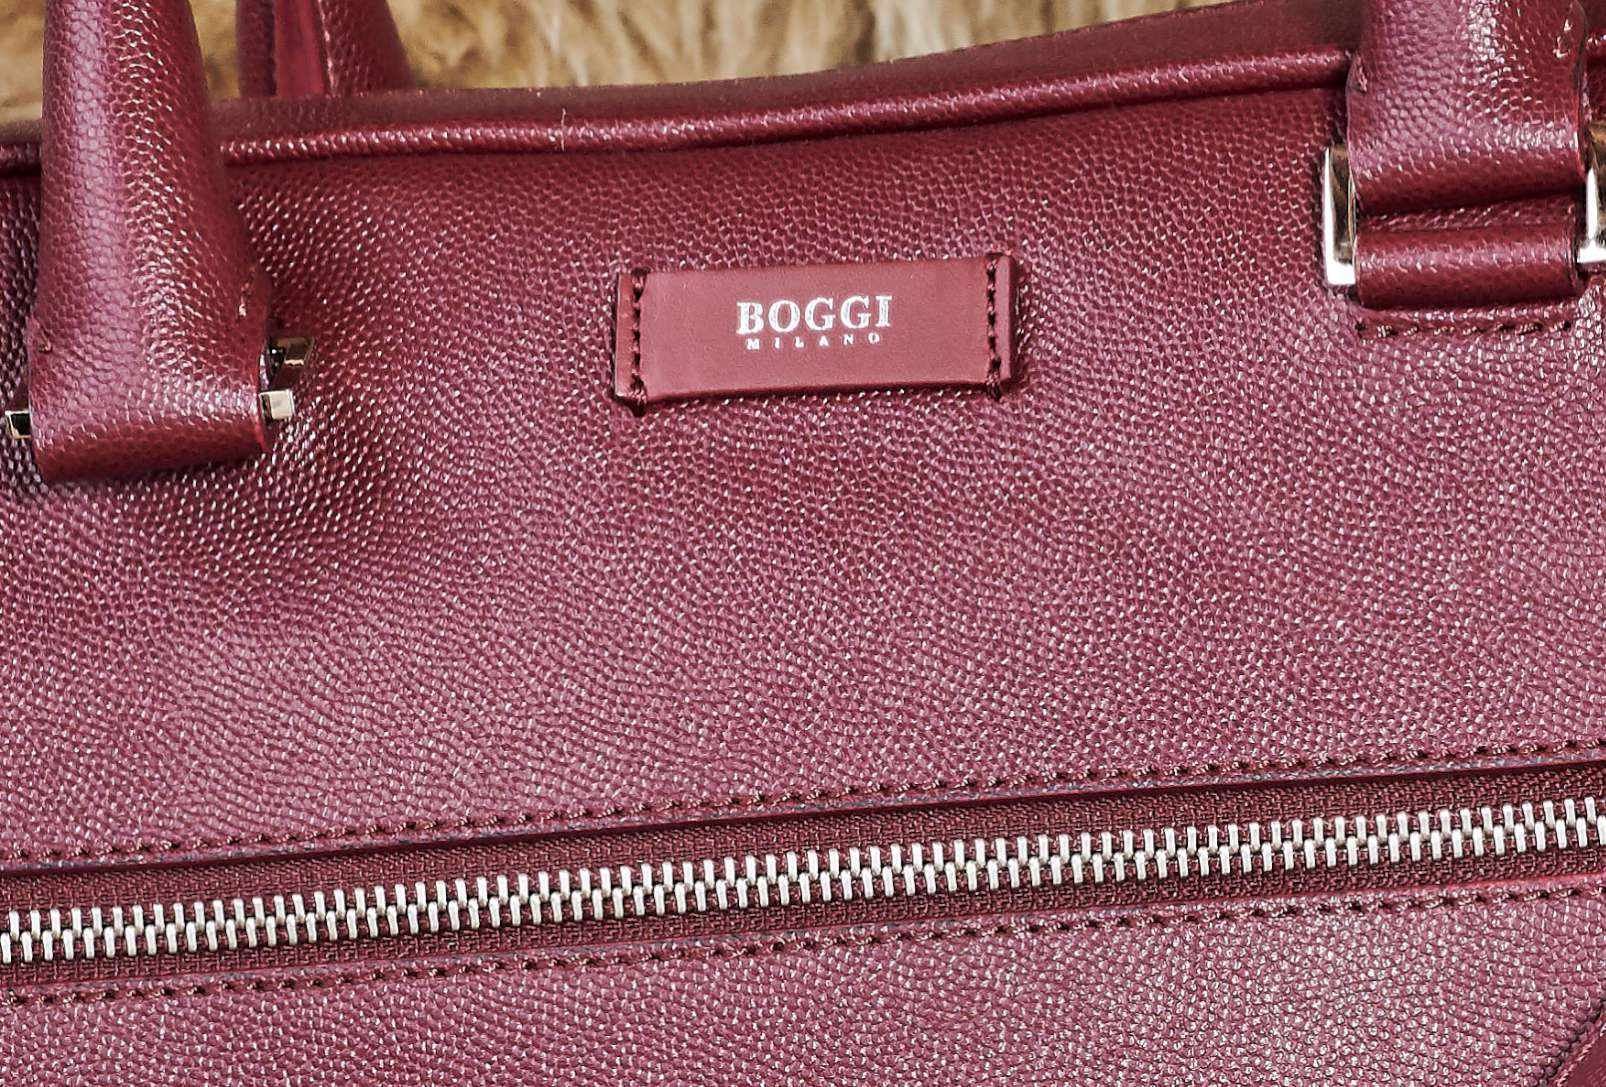 Boggi Milano Caviar leather single zip briefcase, A4 document holder, bordeaux